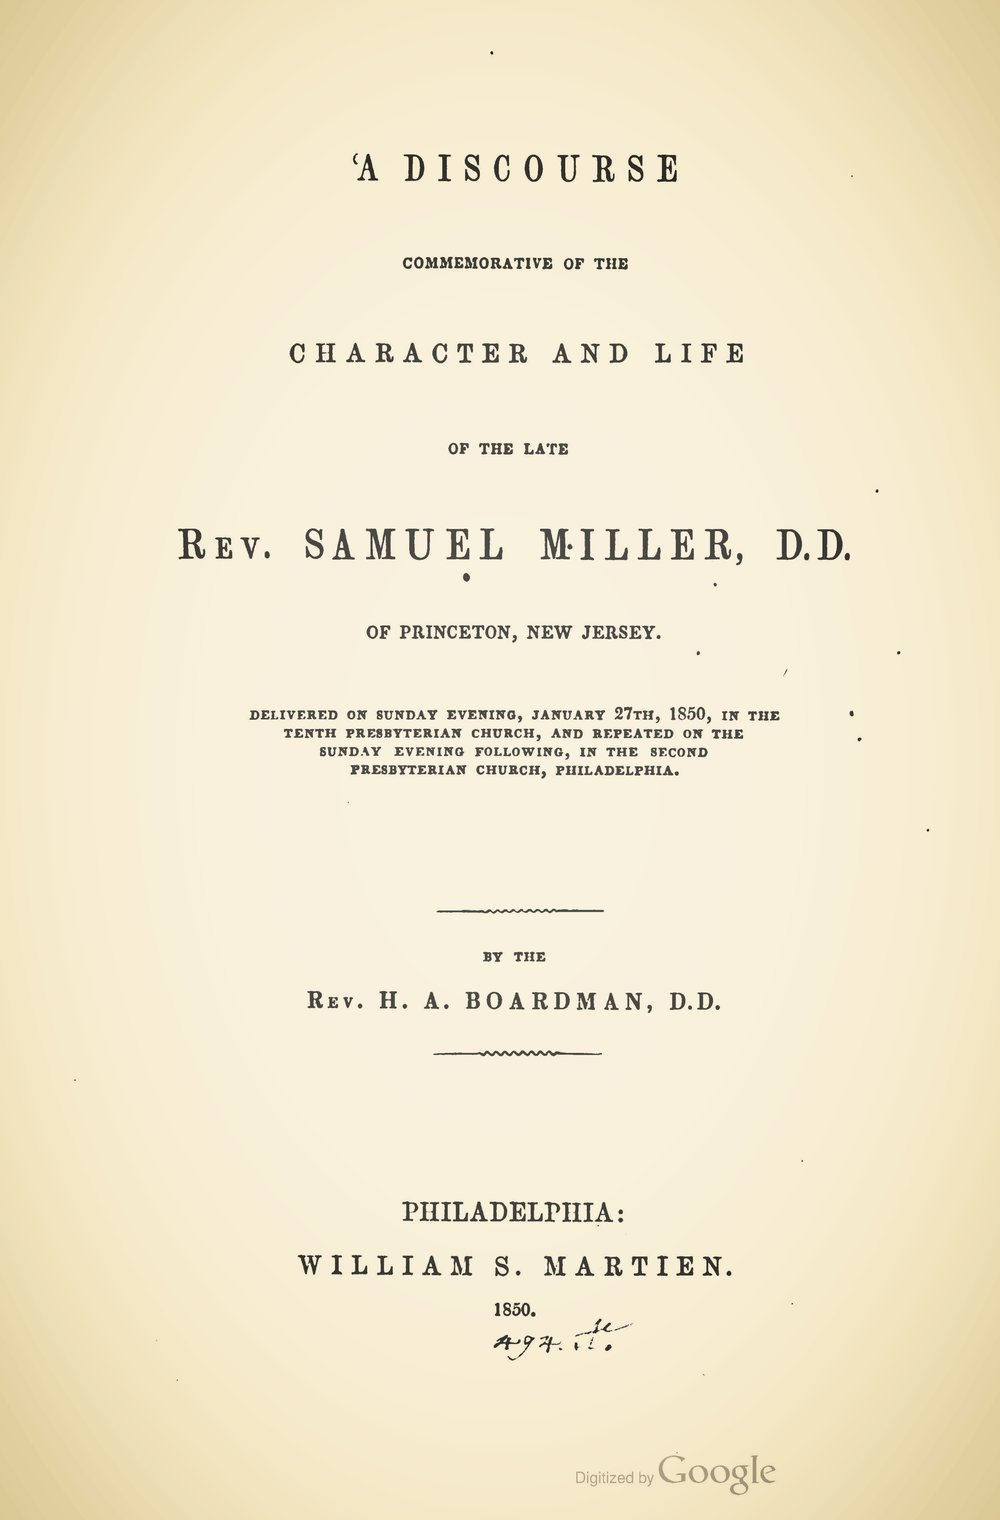 Boardman, Henry Augustus, A Discourse Commemorative of the Character and Life of the Late Rev. Sam. Miller Title Page.jpg